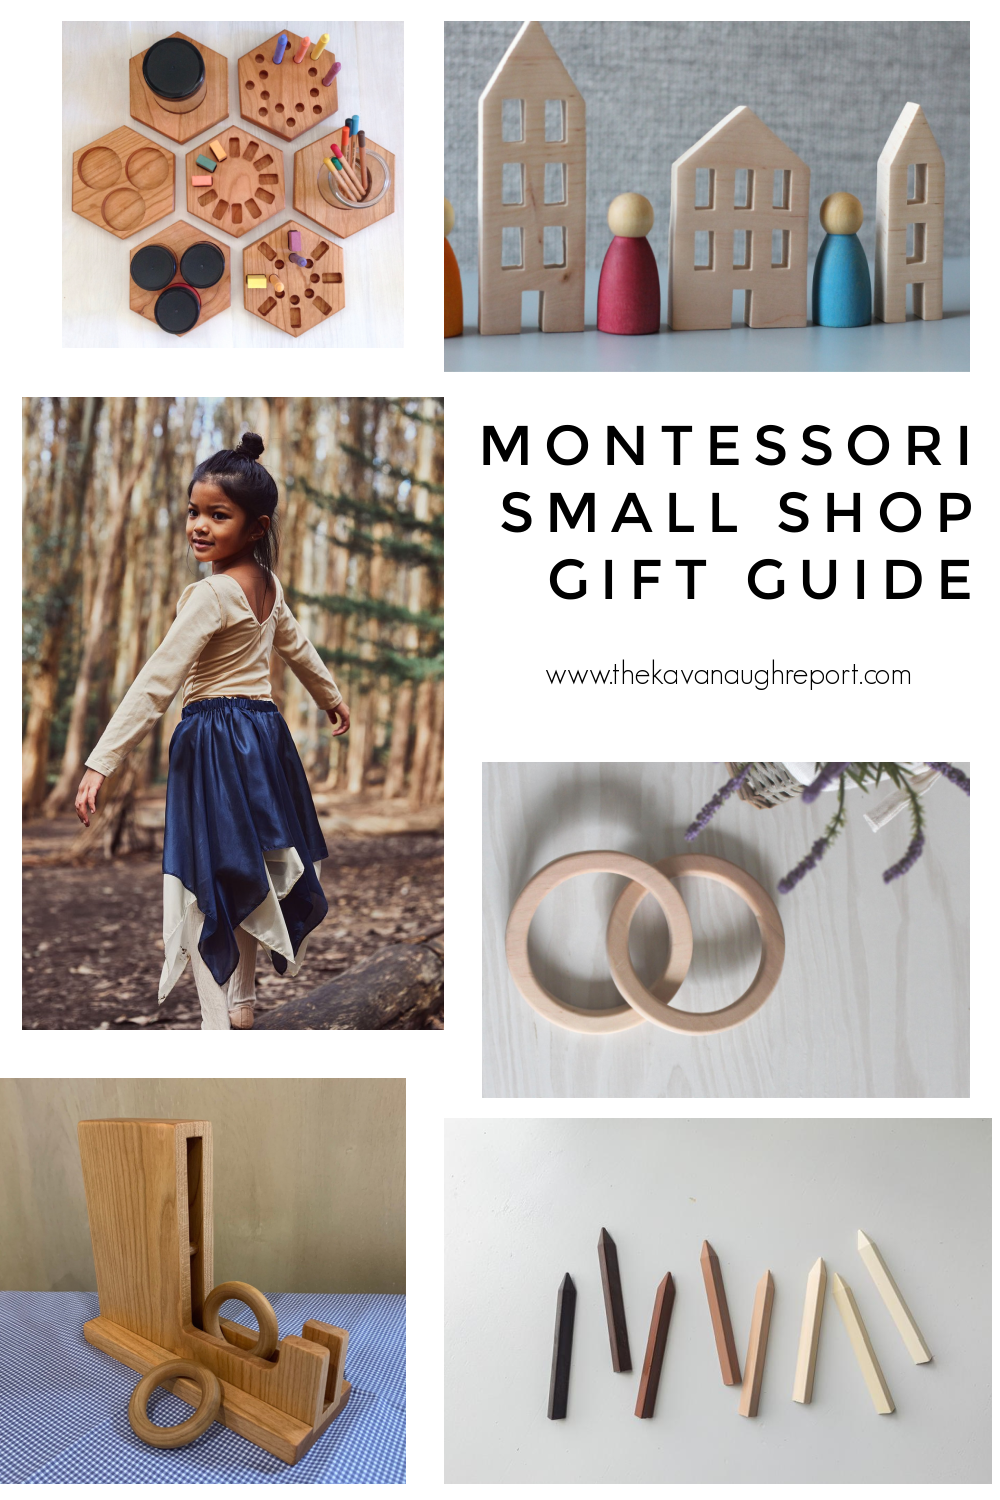 Montessori friendly gift ideas from small shops. These toys are perfect for babies, toddlers, and preschoolers.